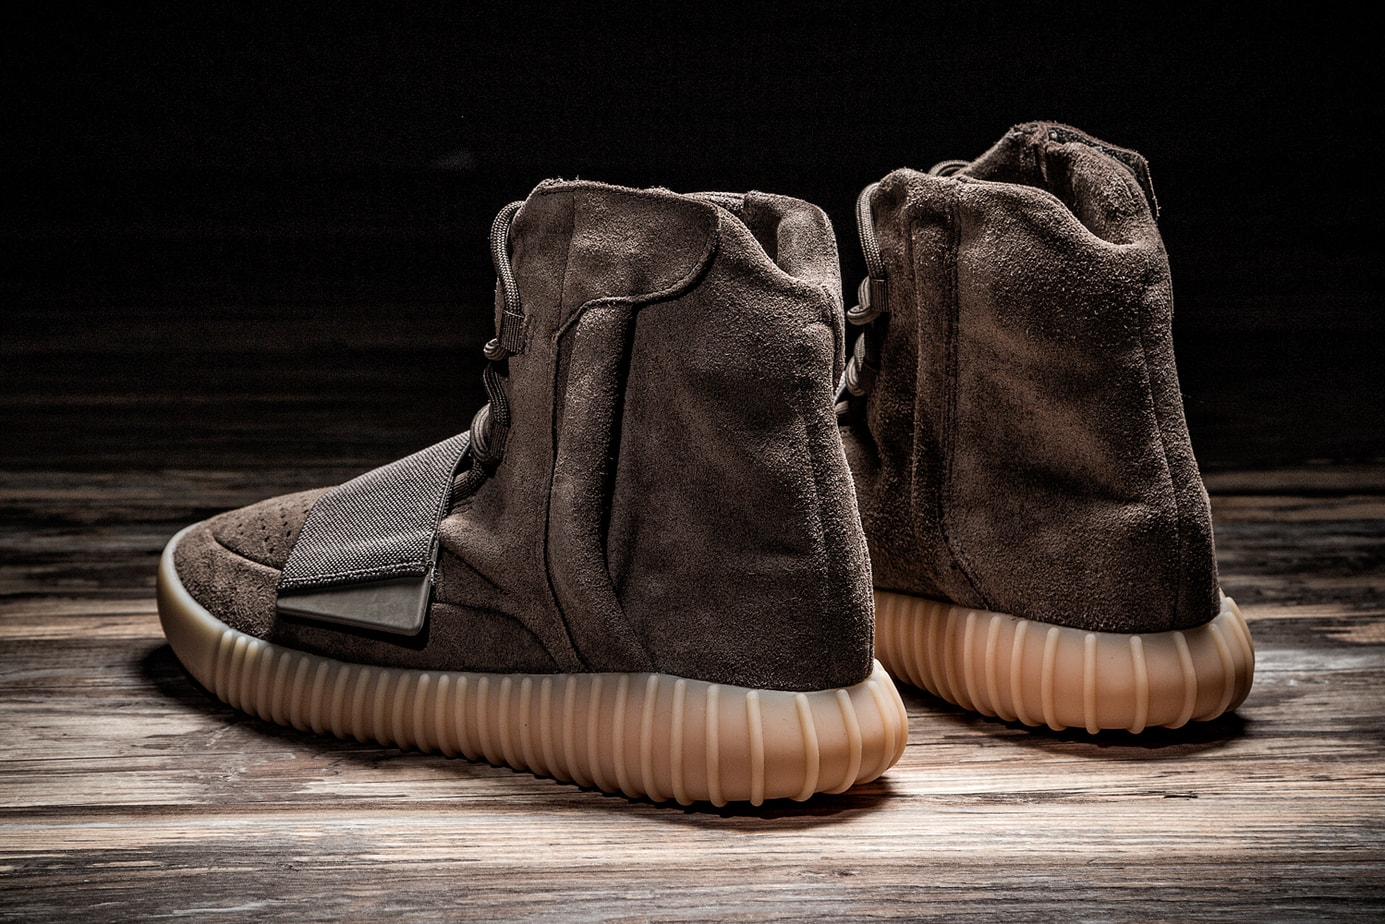 adidas Yeezy 750 Boost Chocolate Brown